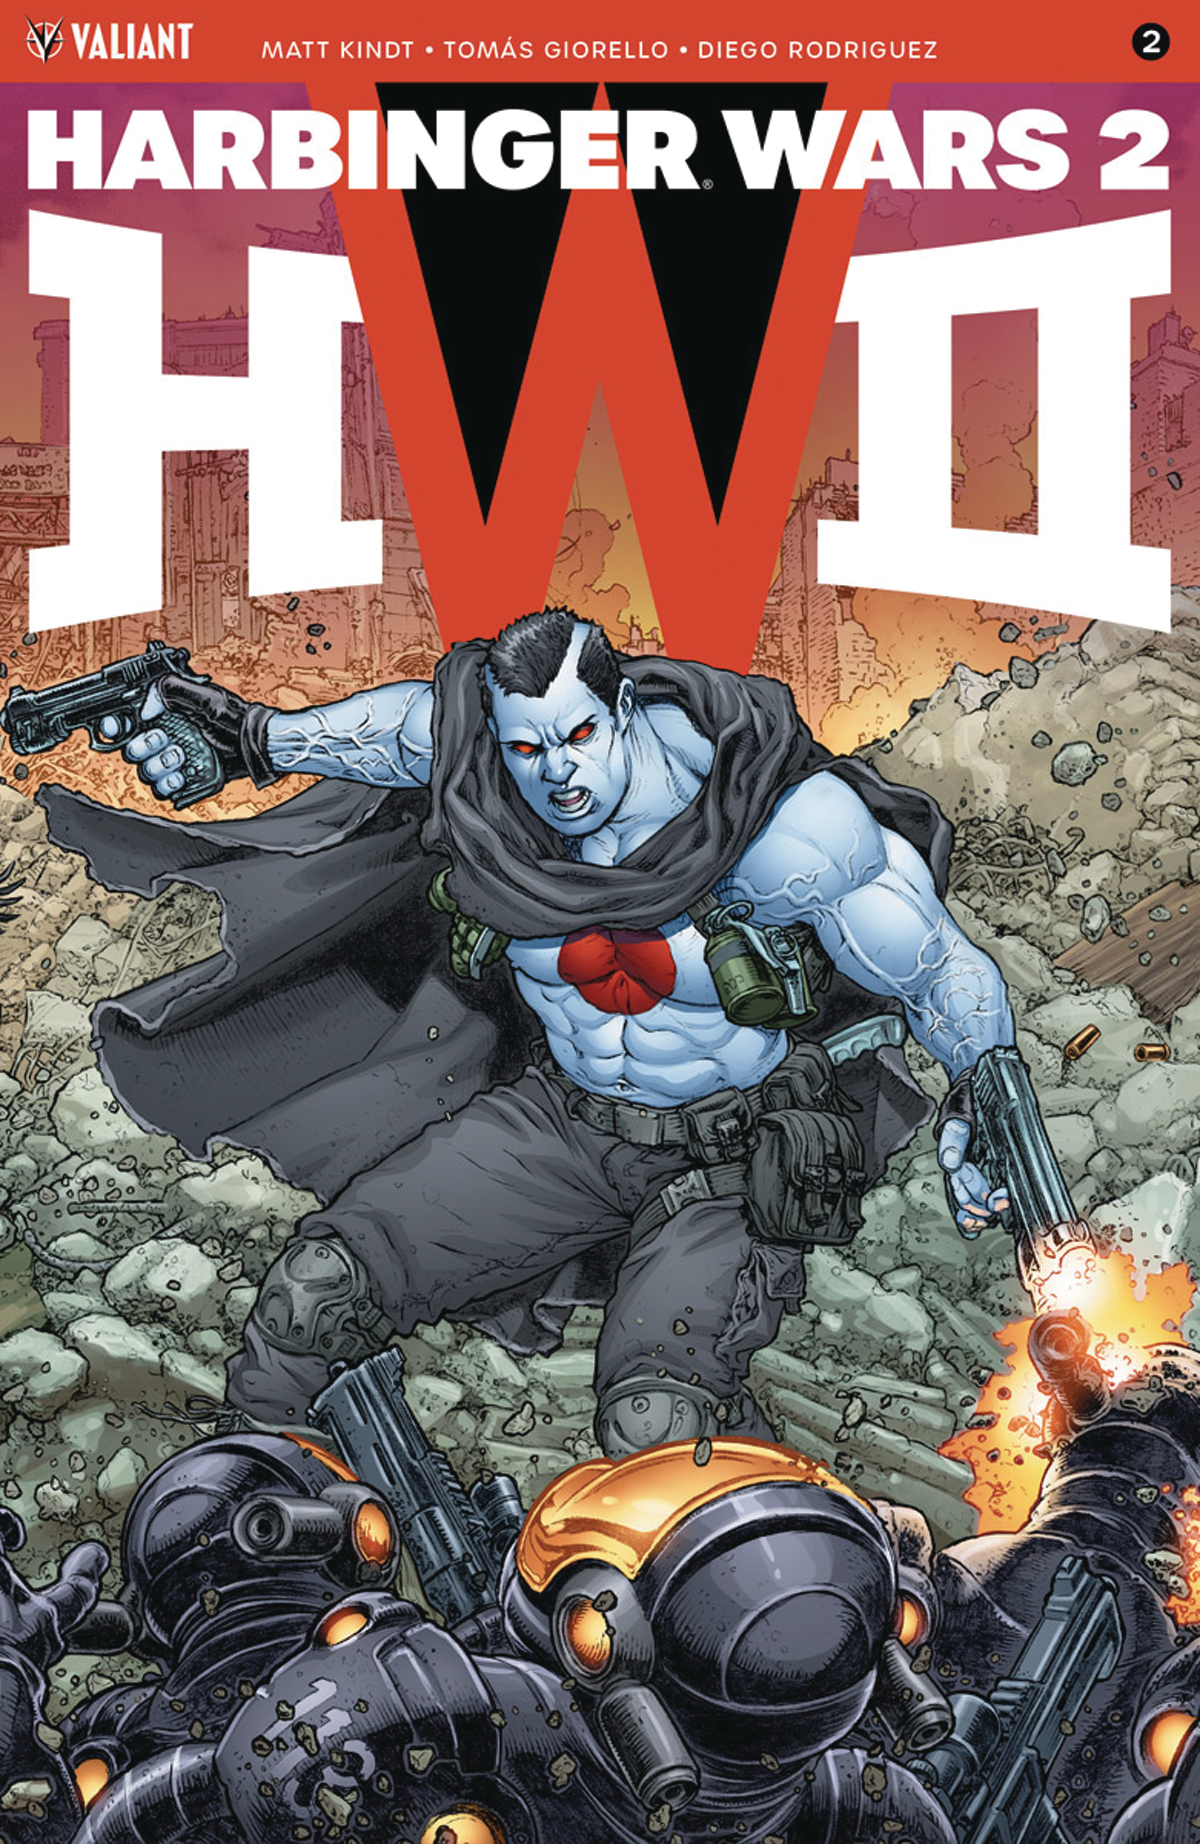 HARBINGER WARS 2 #2 (OF 4) CVR C 20 COPY INCV INTERLOCKING V